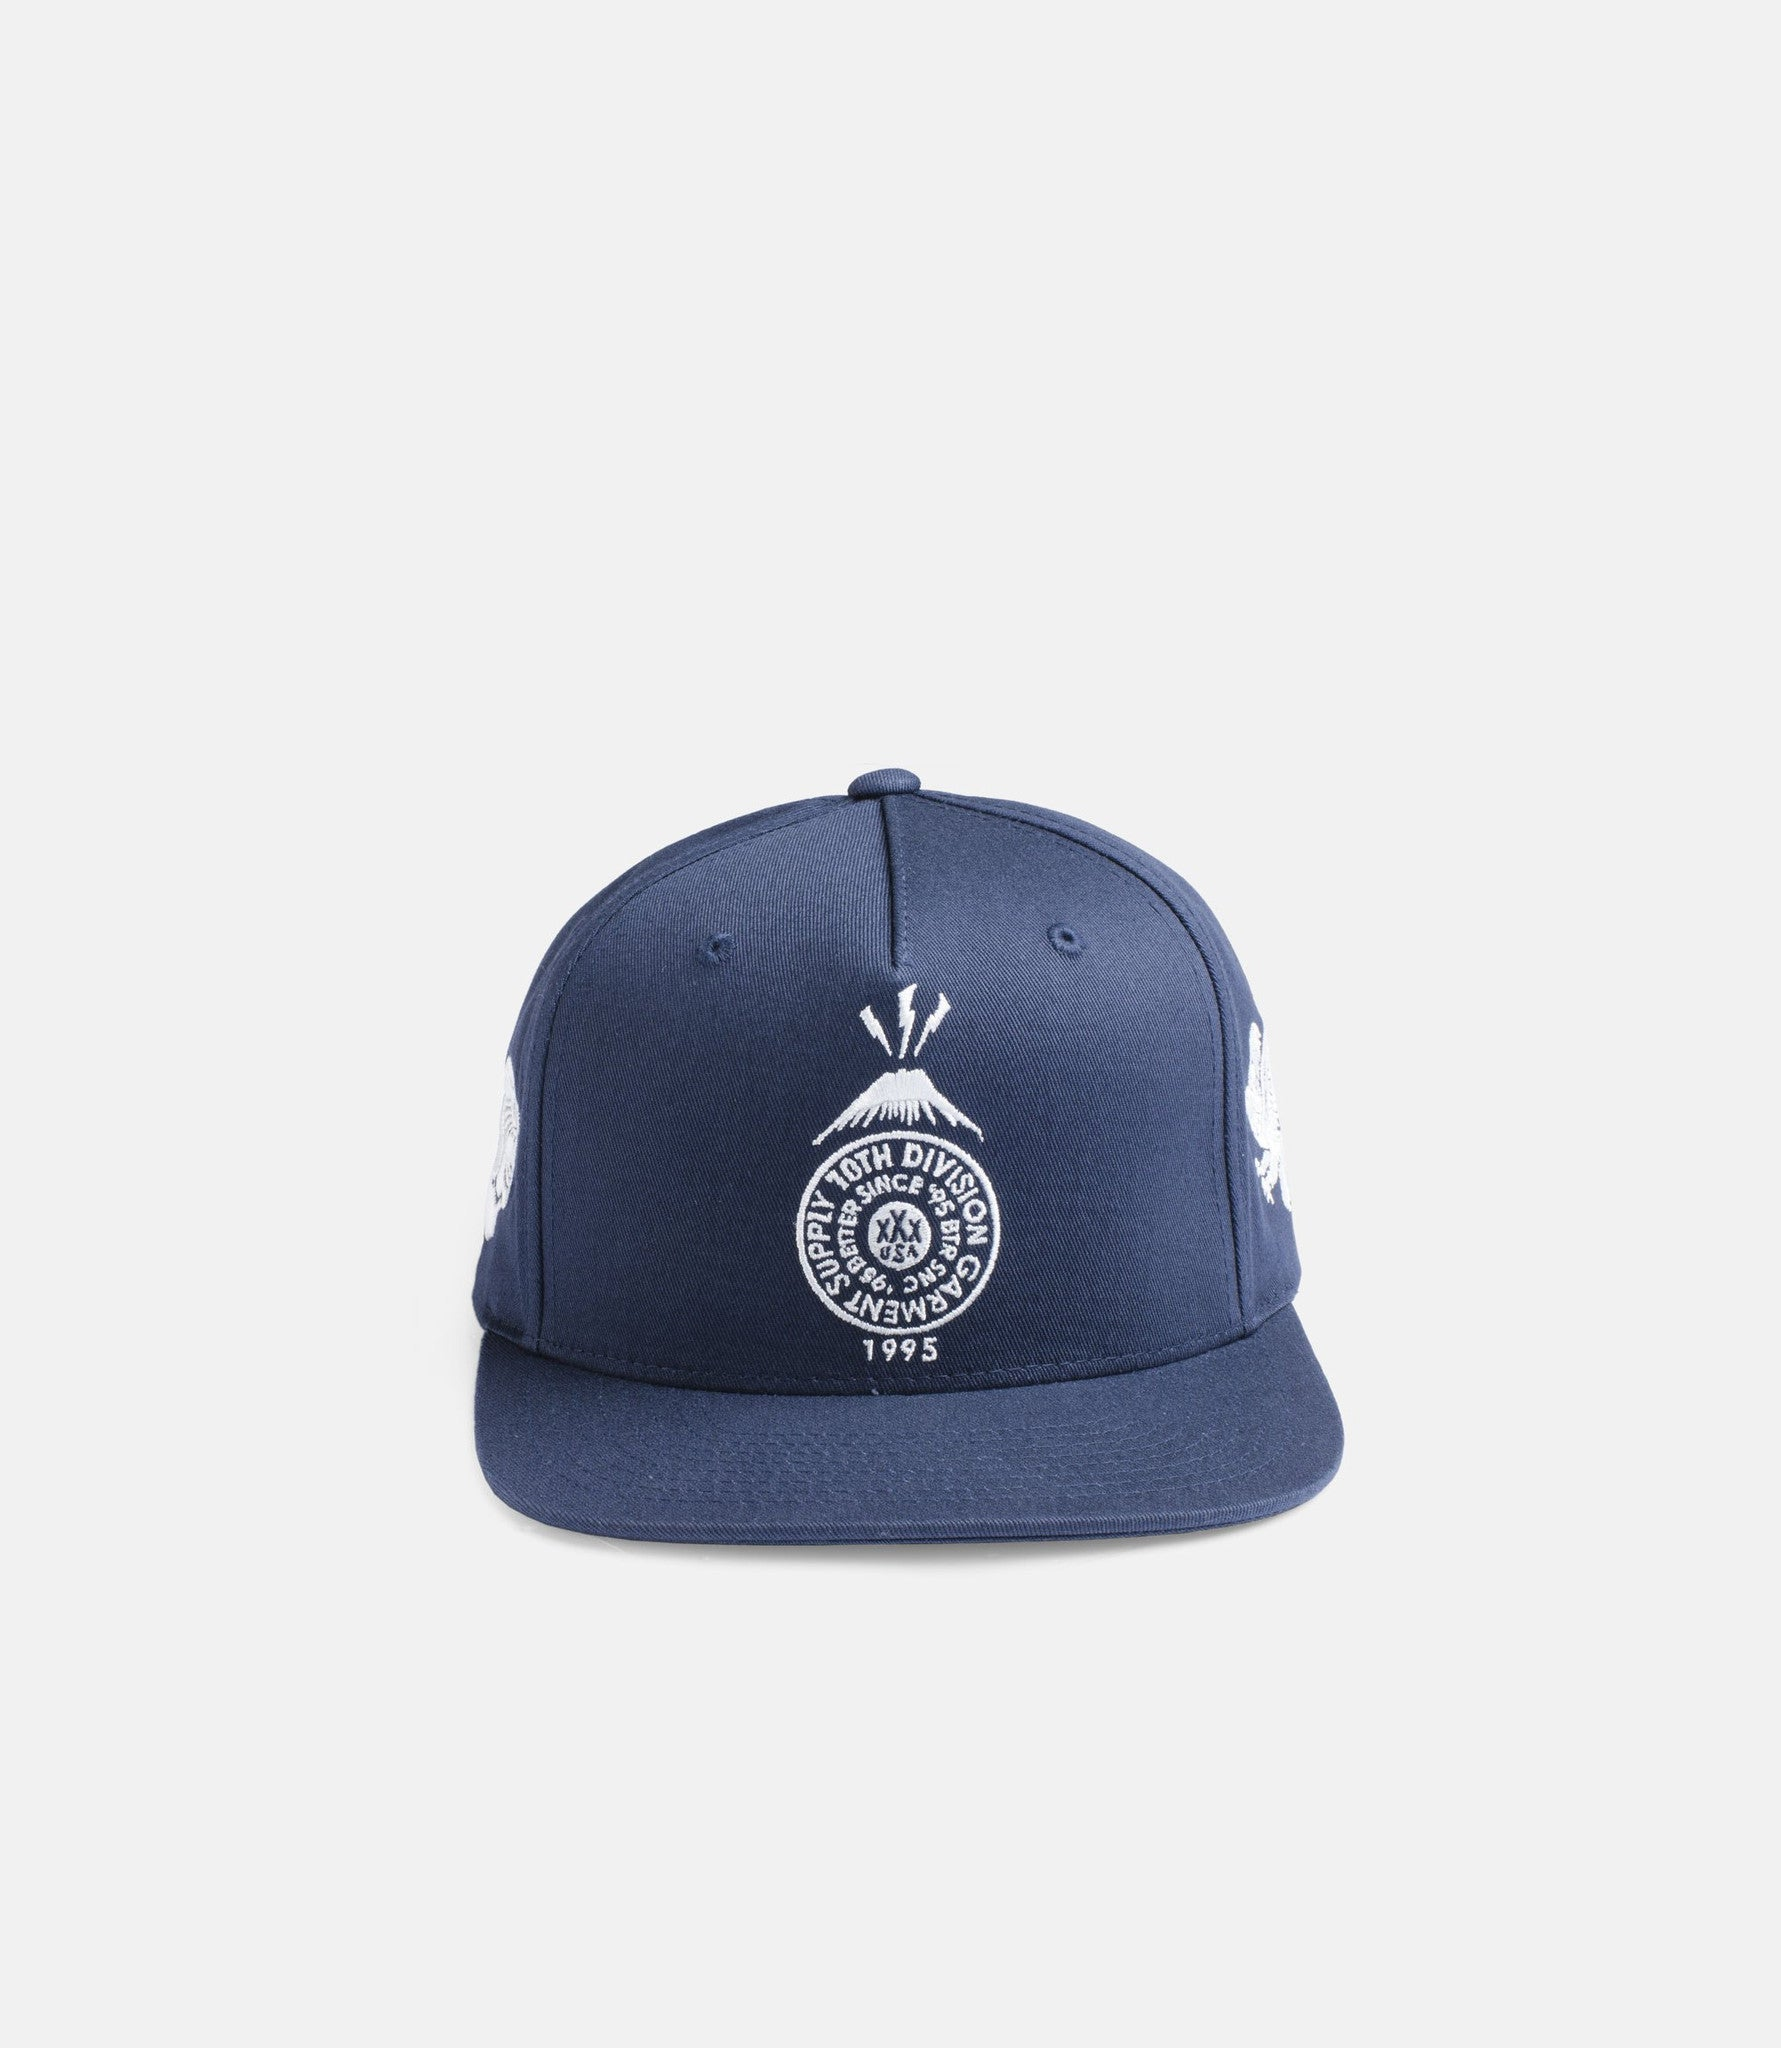 10Deep - Souvenir Snapback, Navy - The Giant Peach - 1